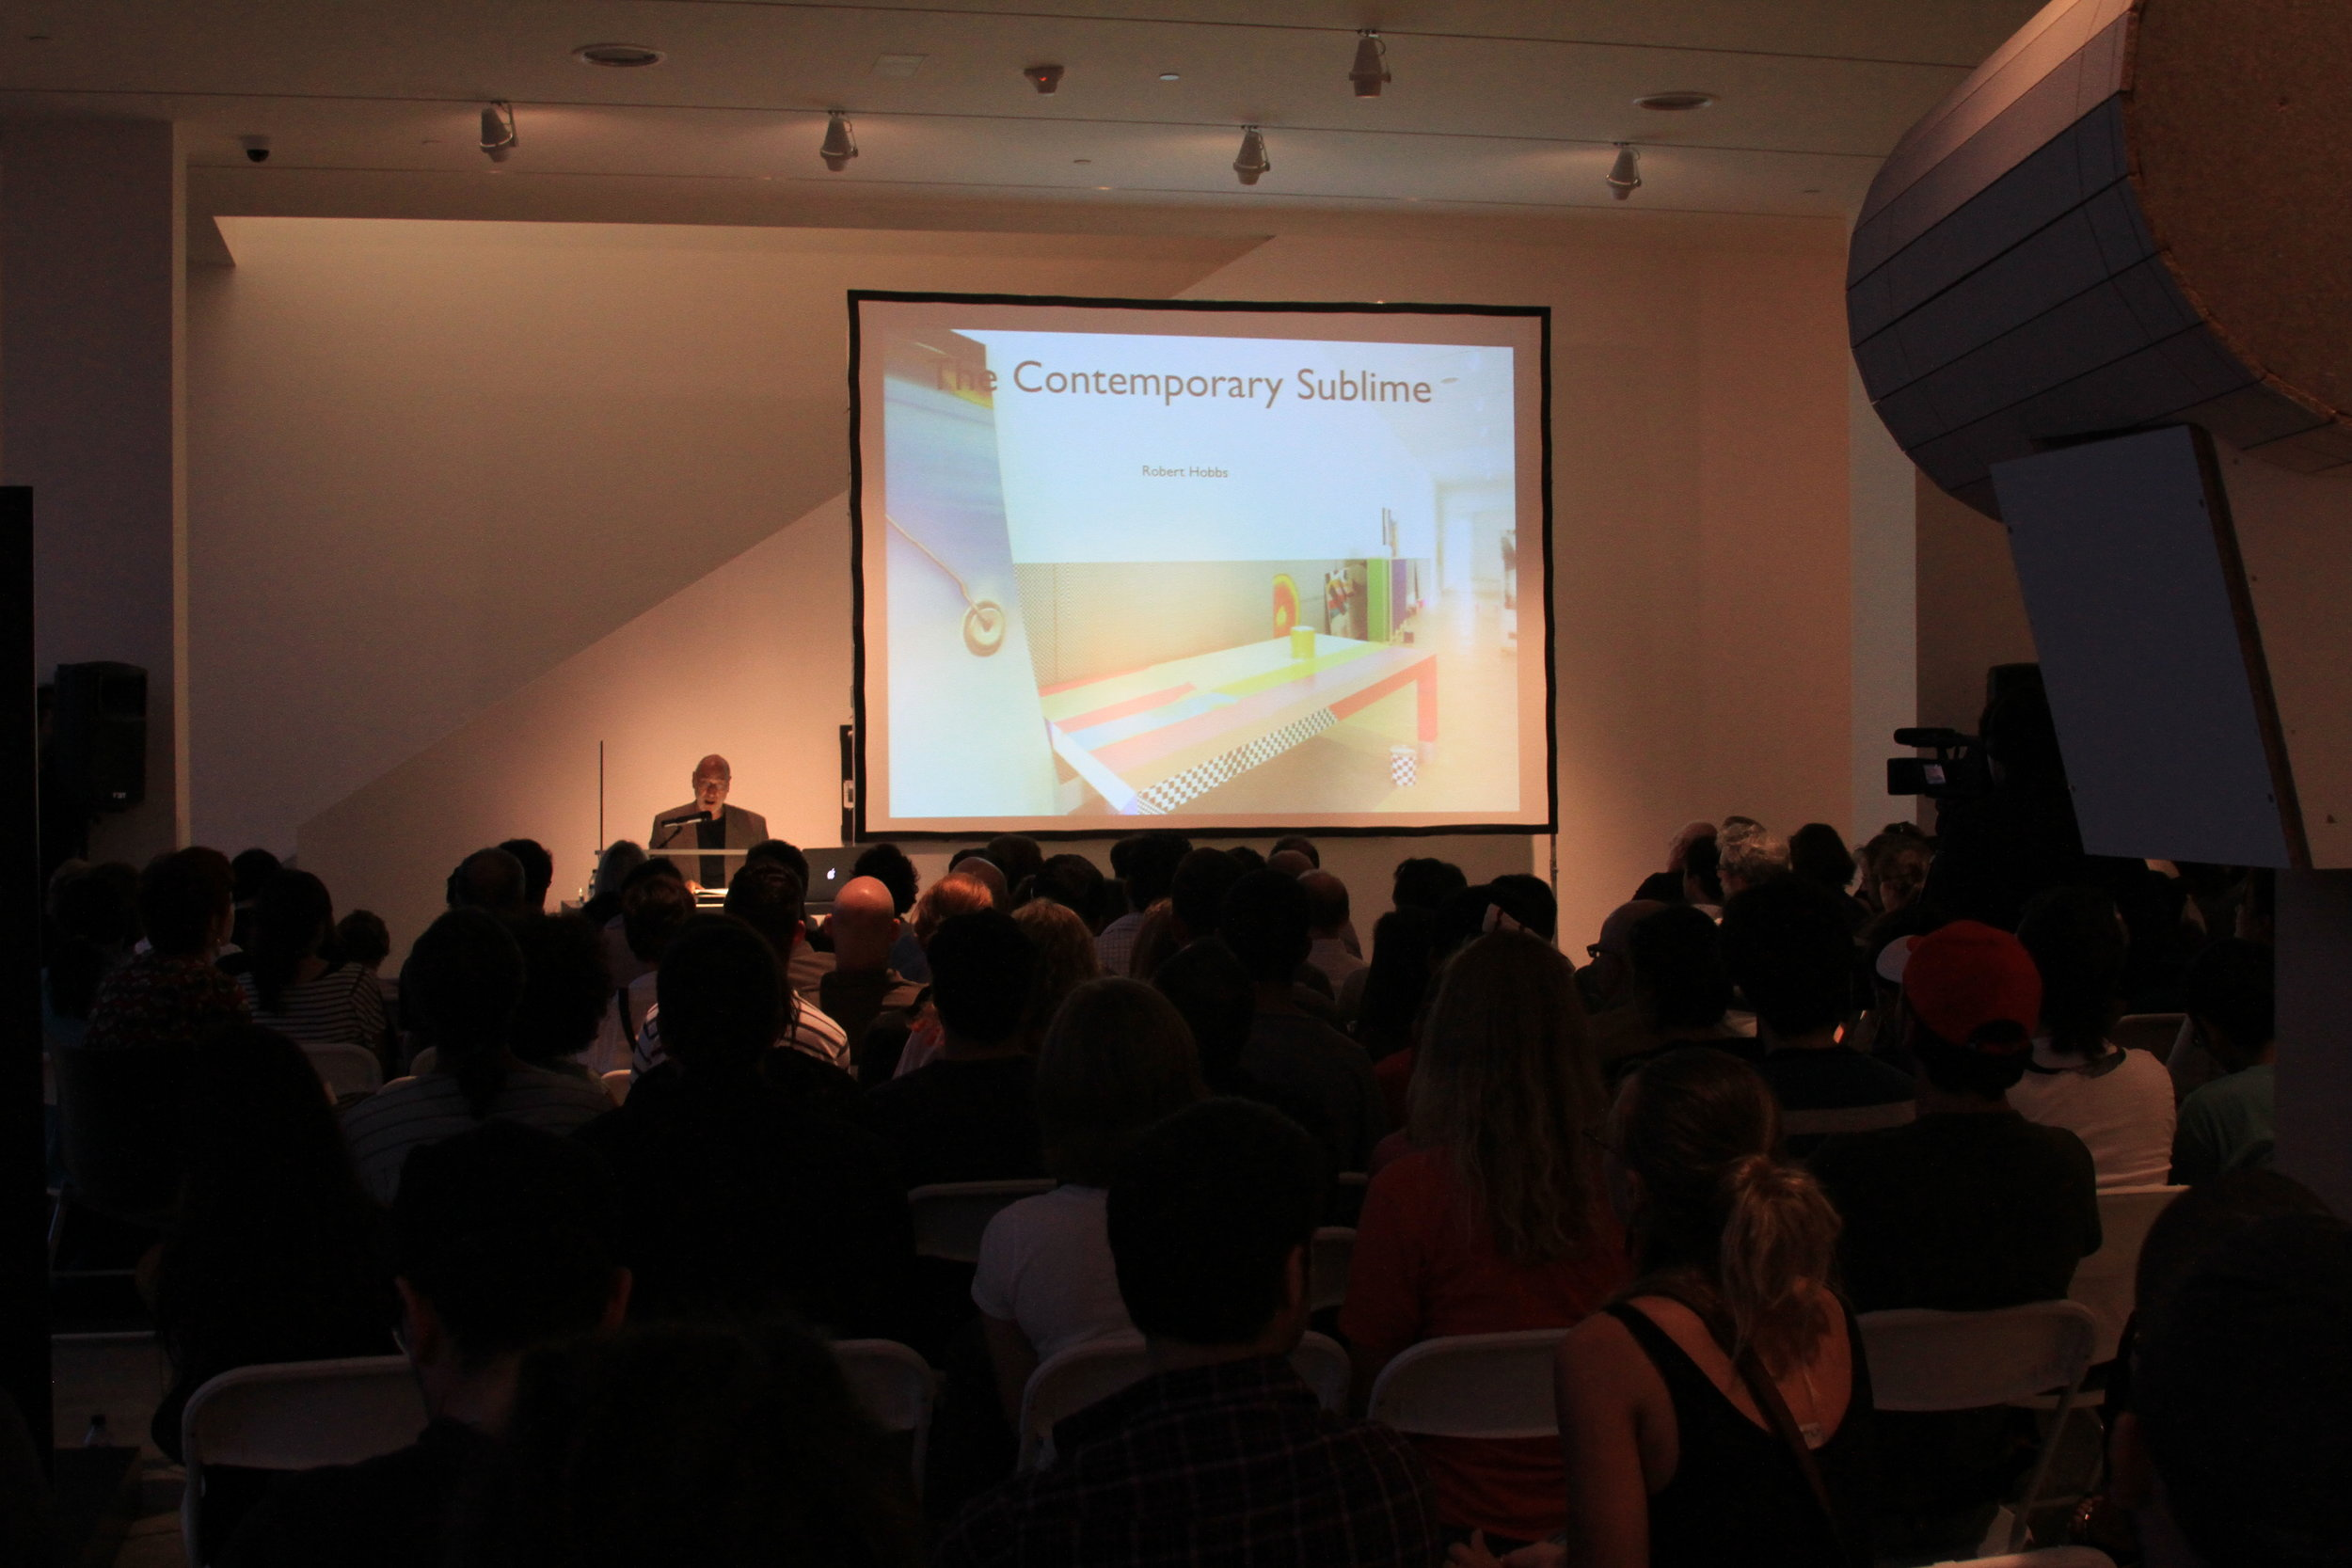 LECTURE WITH DR. ROBERT HOBBS: FORM IS A VERB